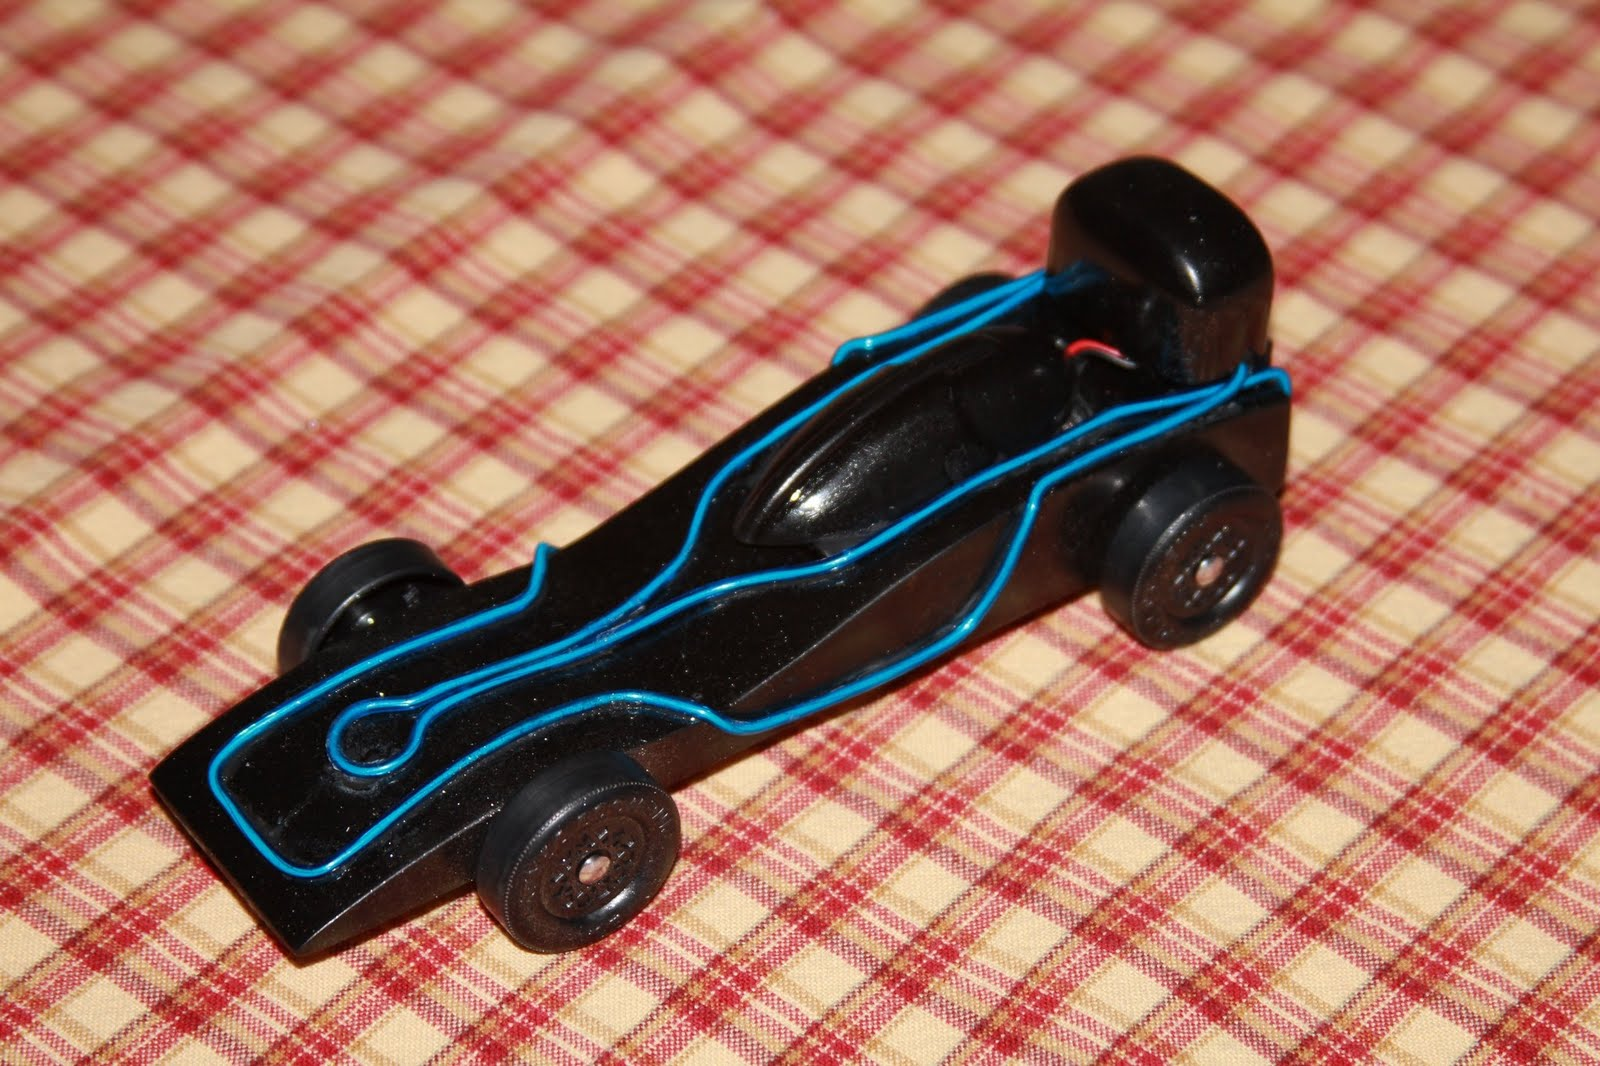 TRON Pinewood Derby Car: TRON Pinewood Derby Car